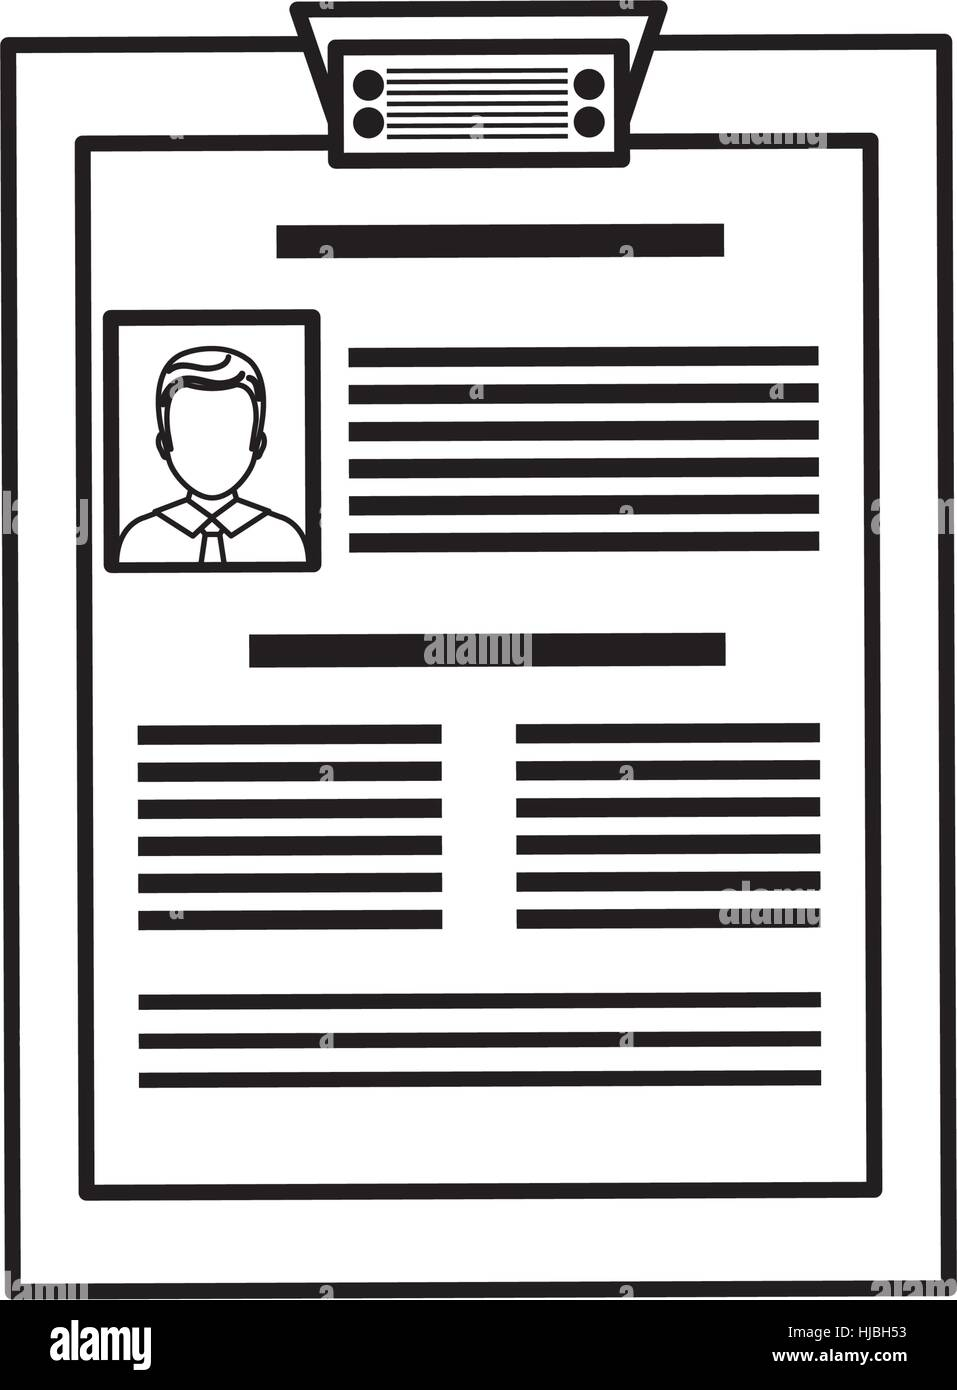 Business Curriculum Vitae Icon Vector Illustration Graphic Design